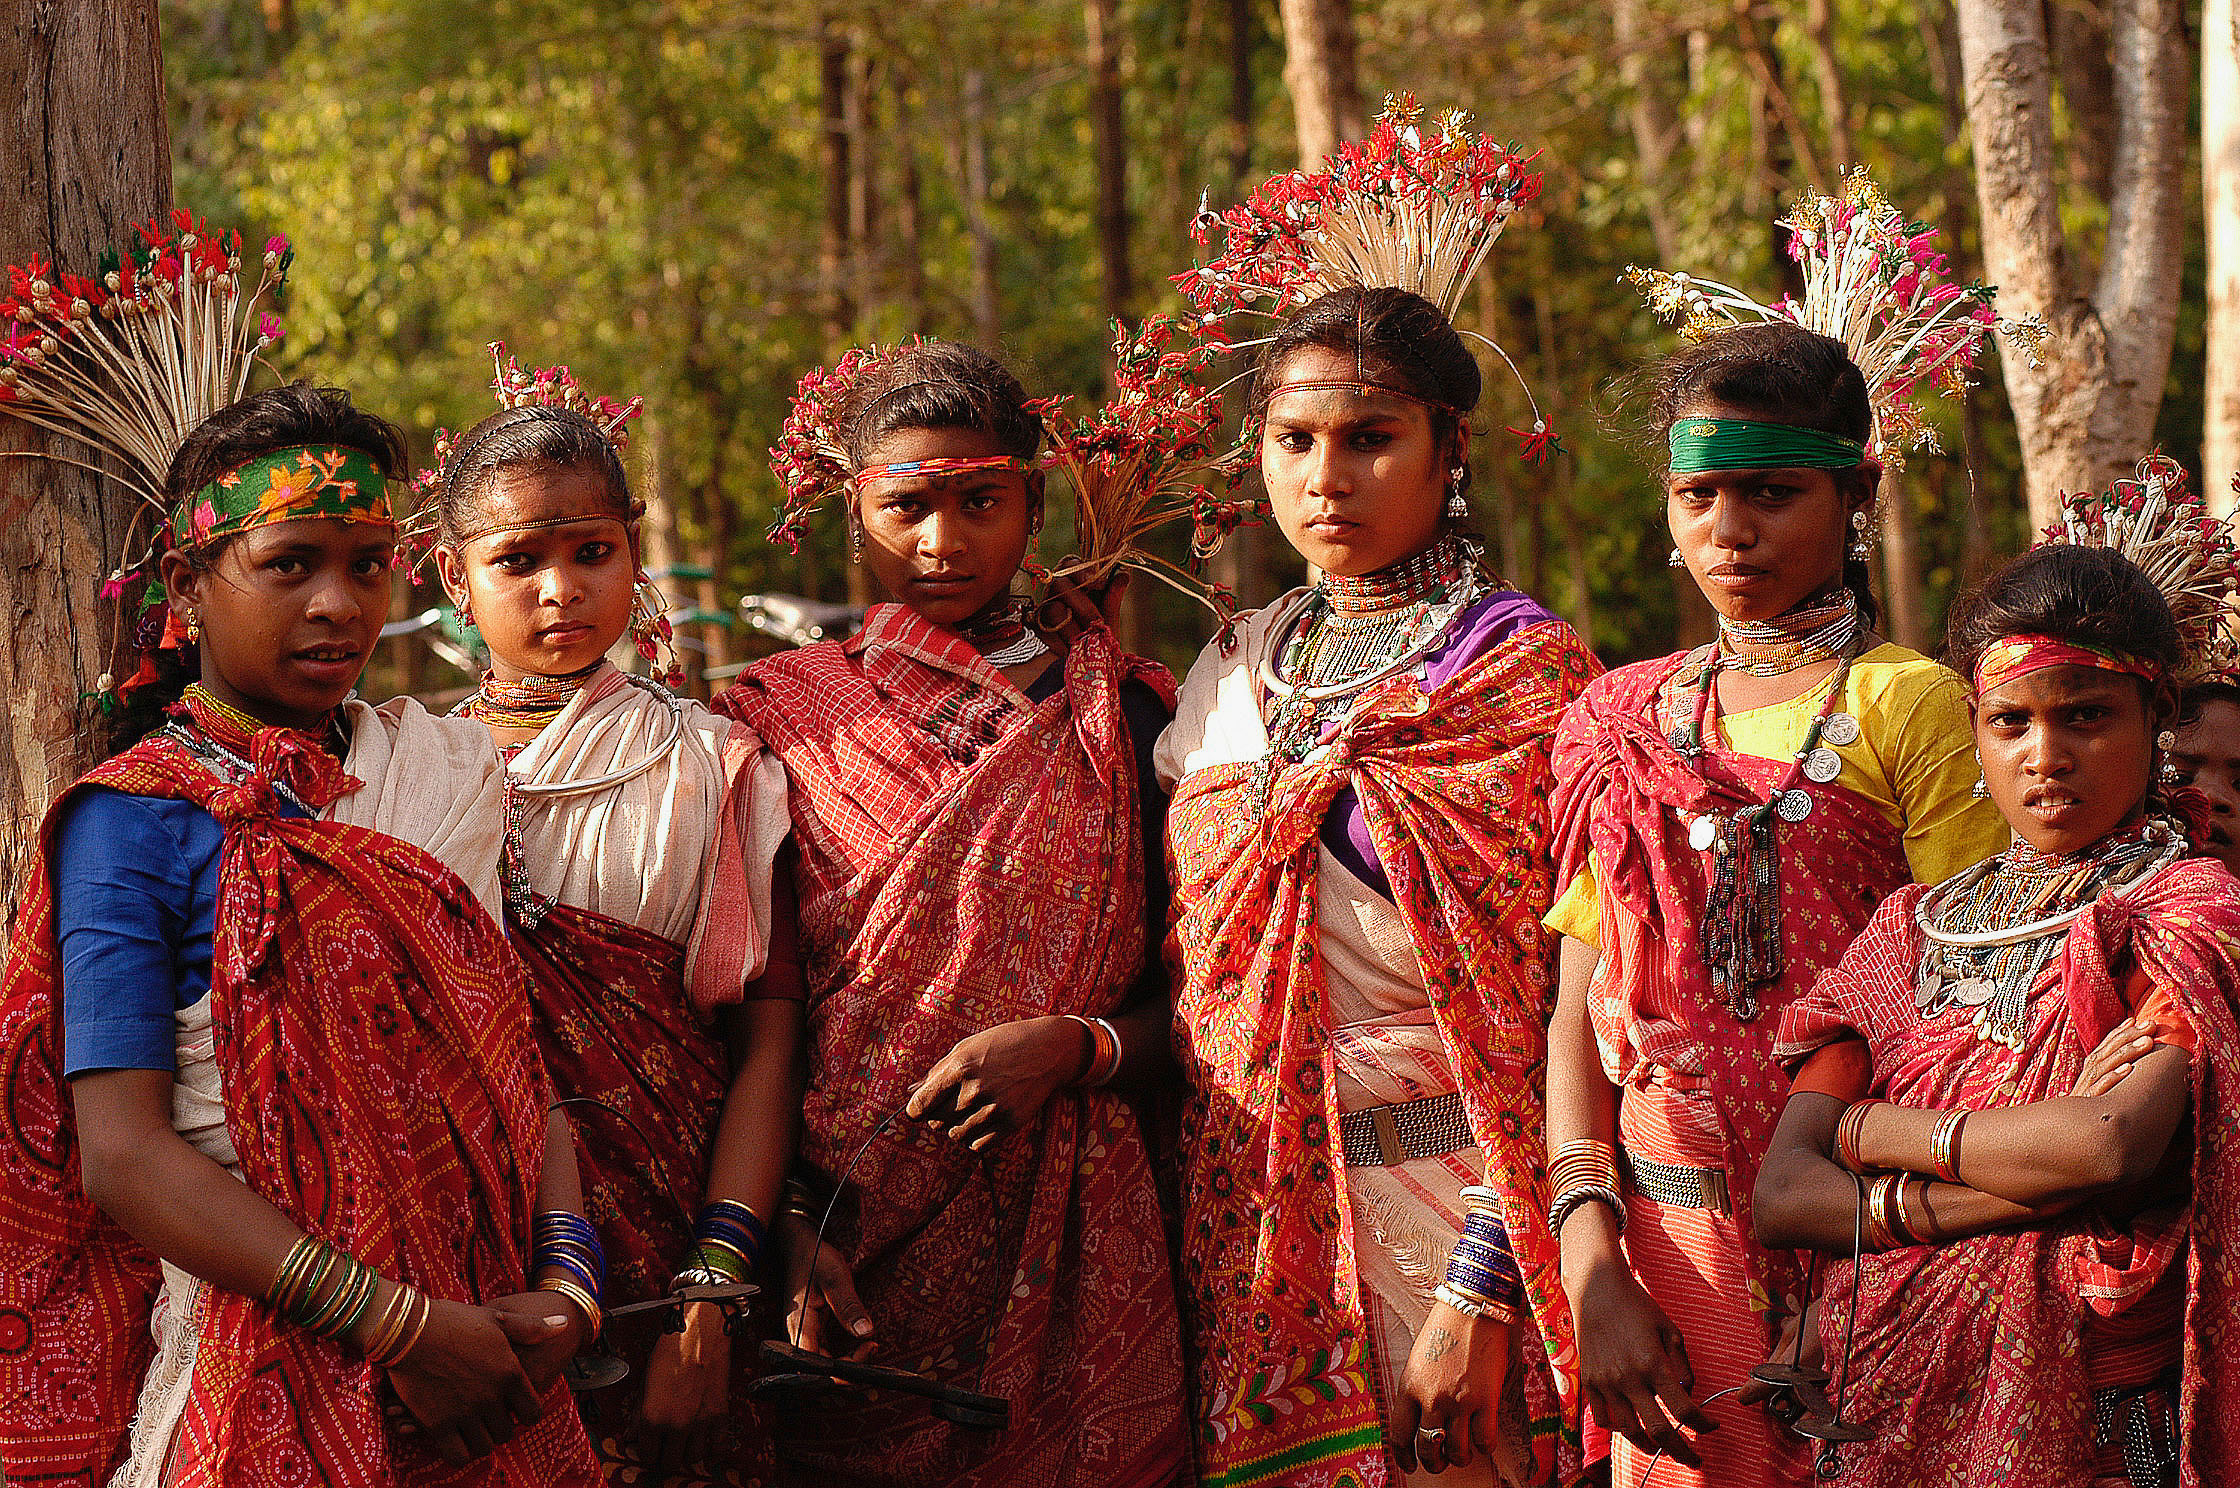 Young_Baiga_women,_India_tribal